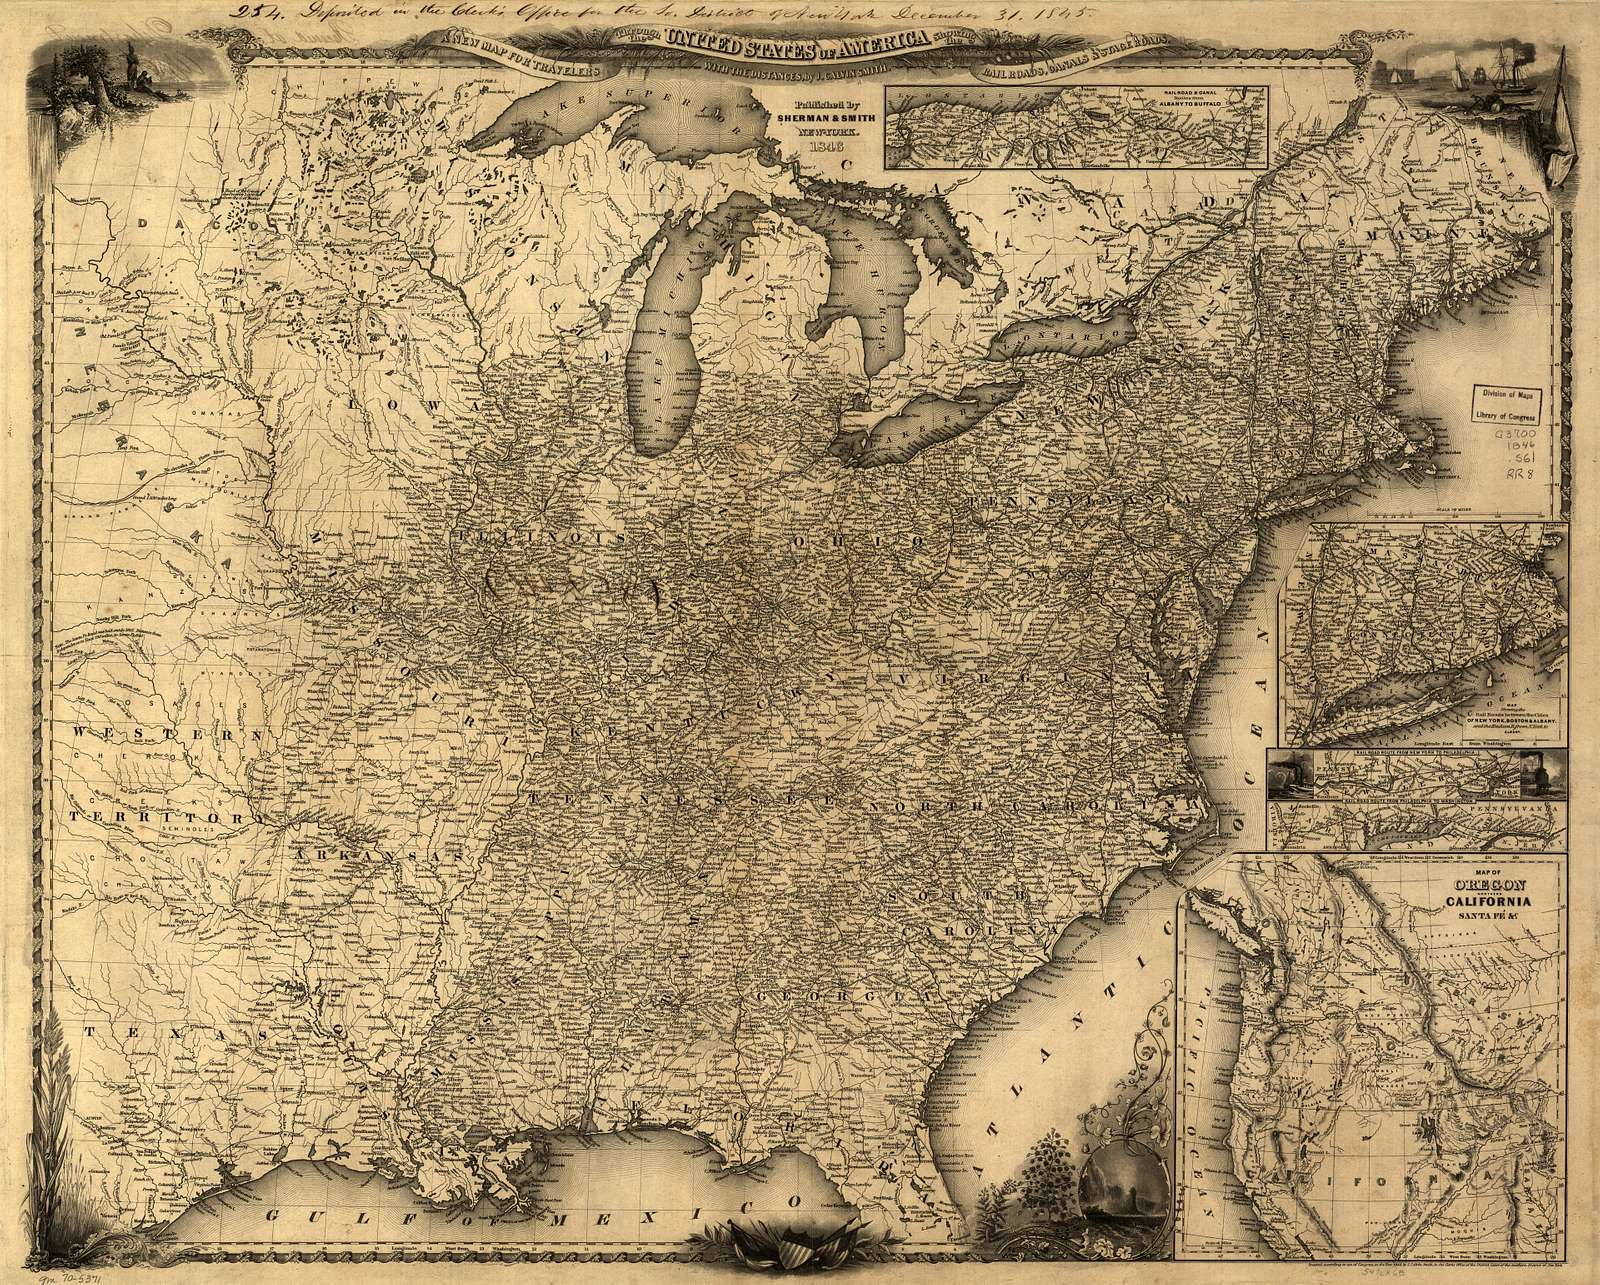 A new map for travelers through the United States of America showing the railroads, canals & stage roads with the distances,